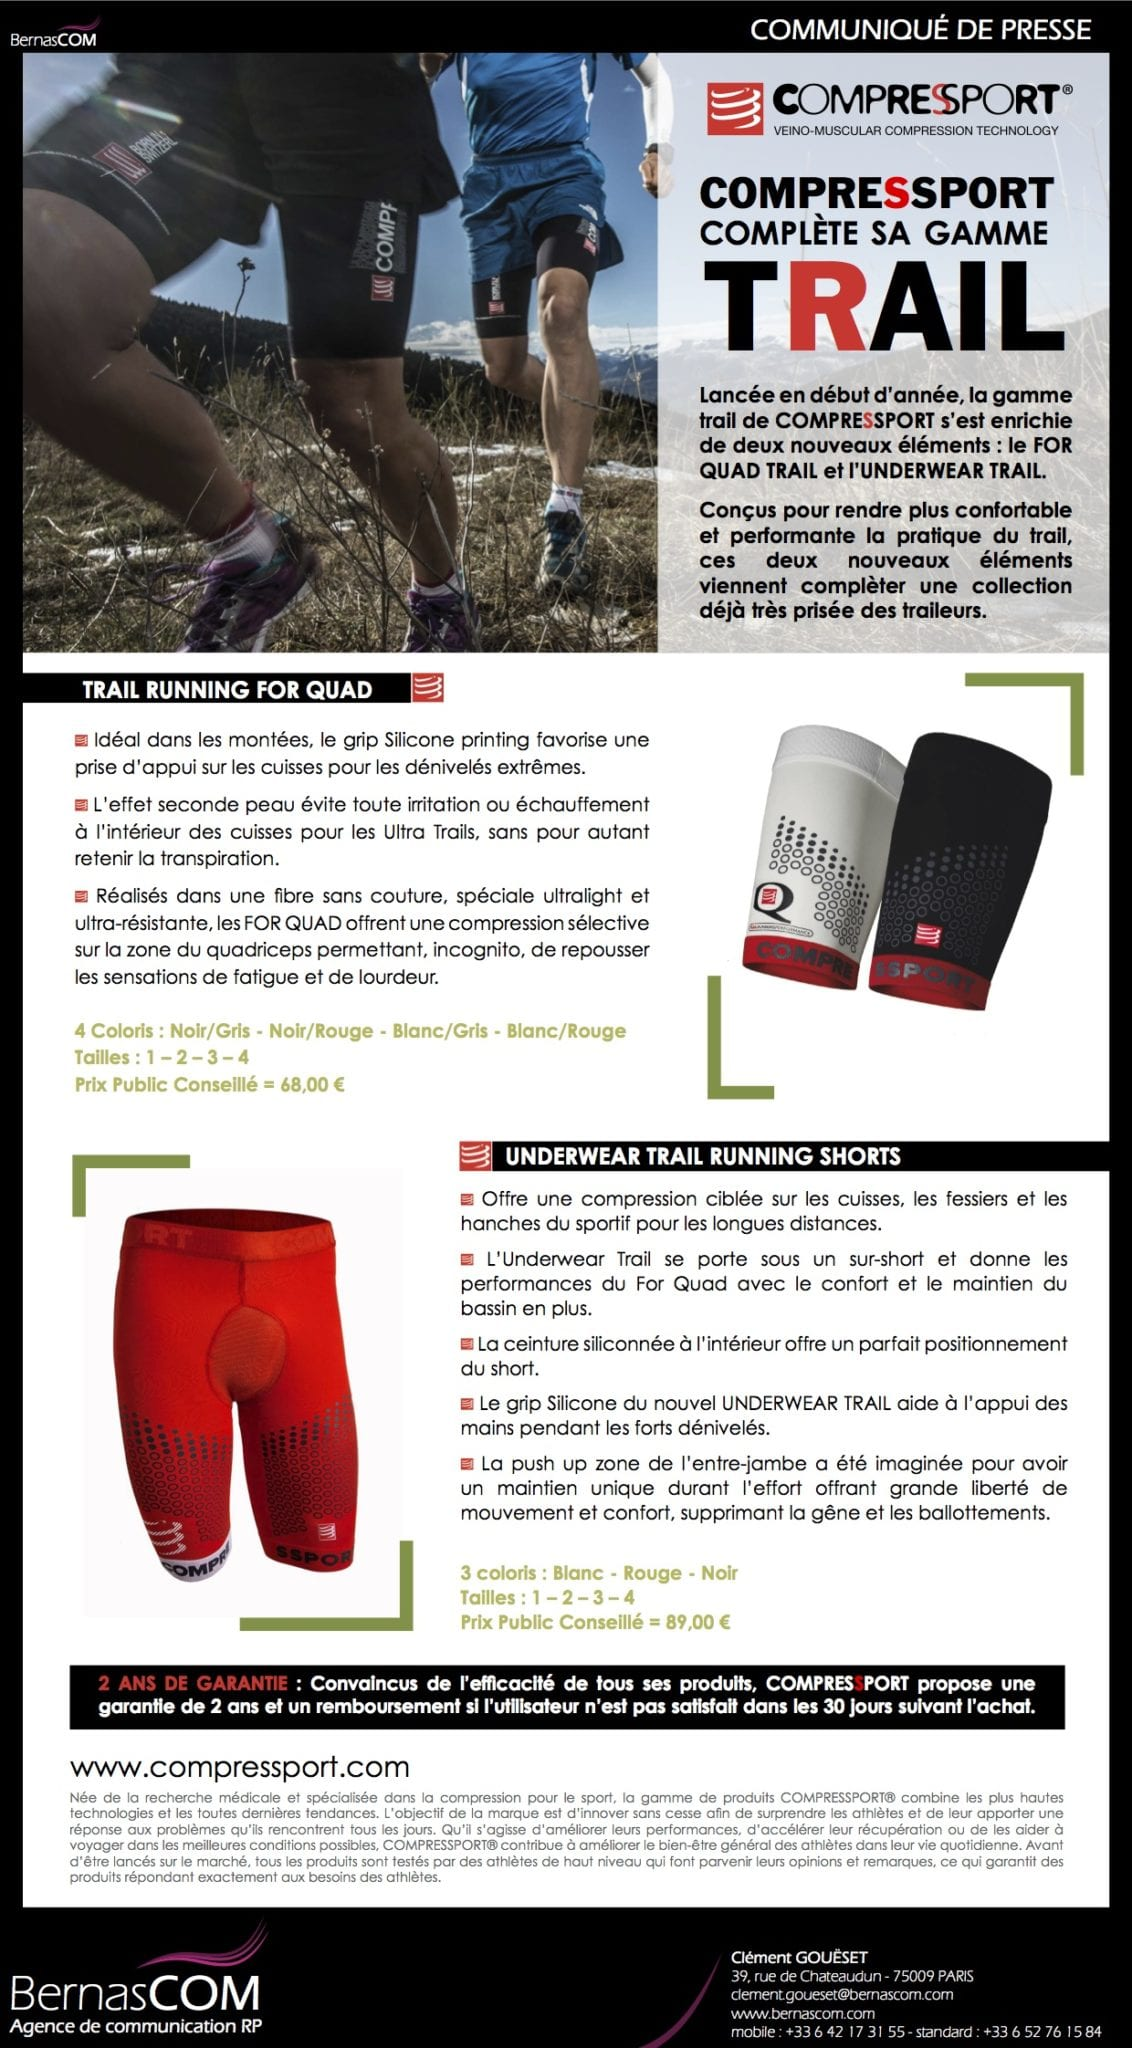 COMPRESSPORT - FORQUAD & UNDERWEAR - Aout13